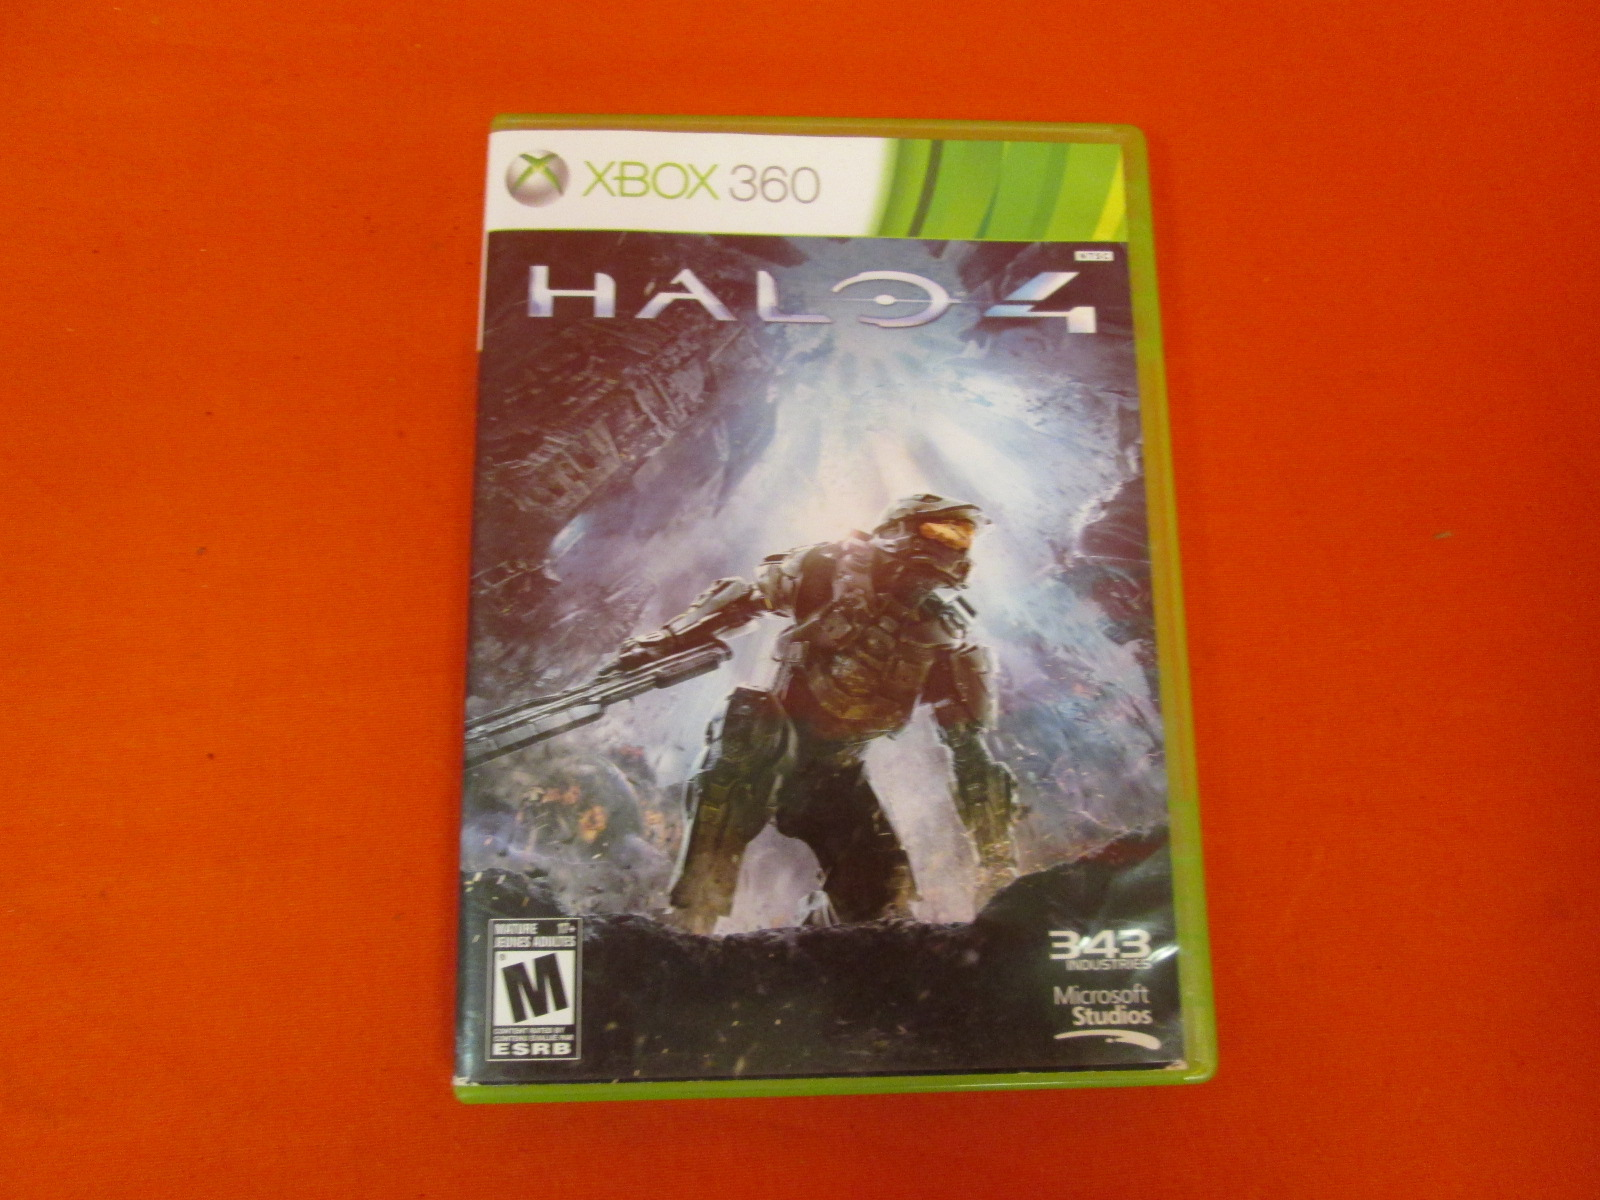 Halo 4 For Xbox 360 French NTSC